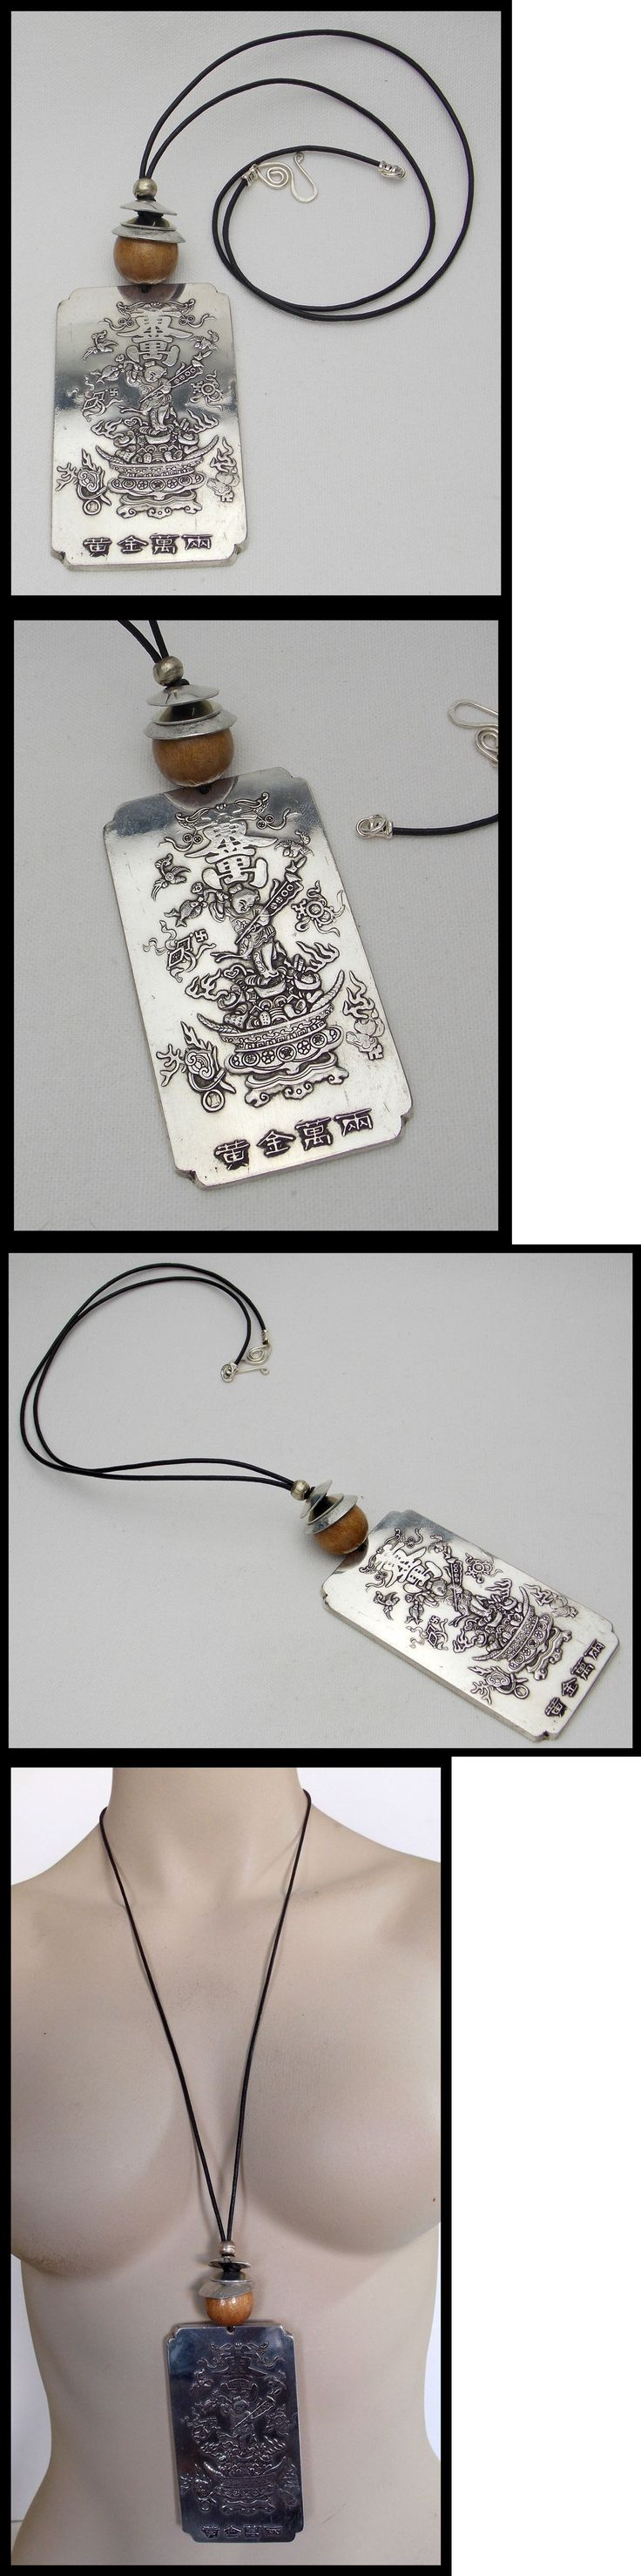 Necklaces and Pendants 98511: Old Chinese Miao Silver Amulet - Elegant Long Leather Necklace BUY IT NOW ONLY: $159.0